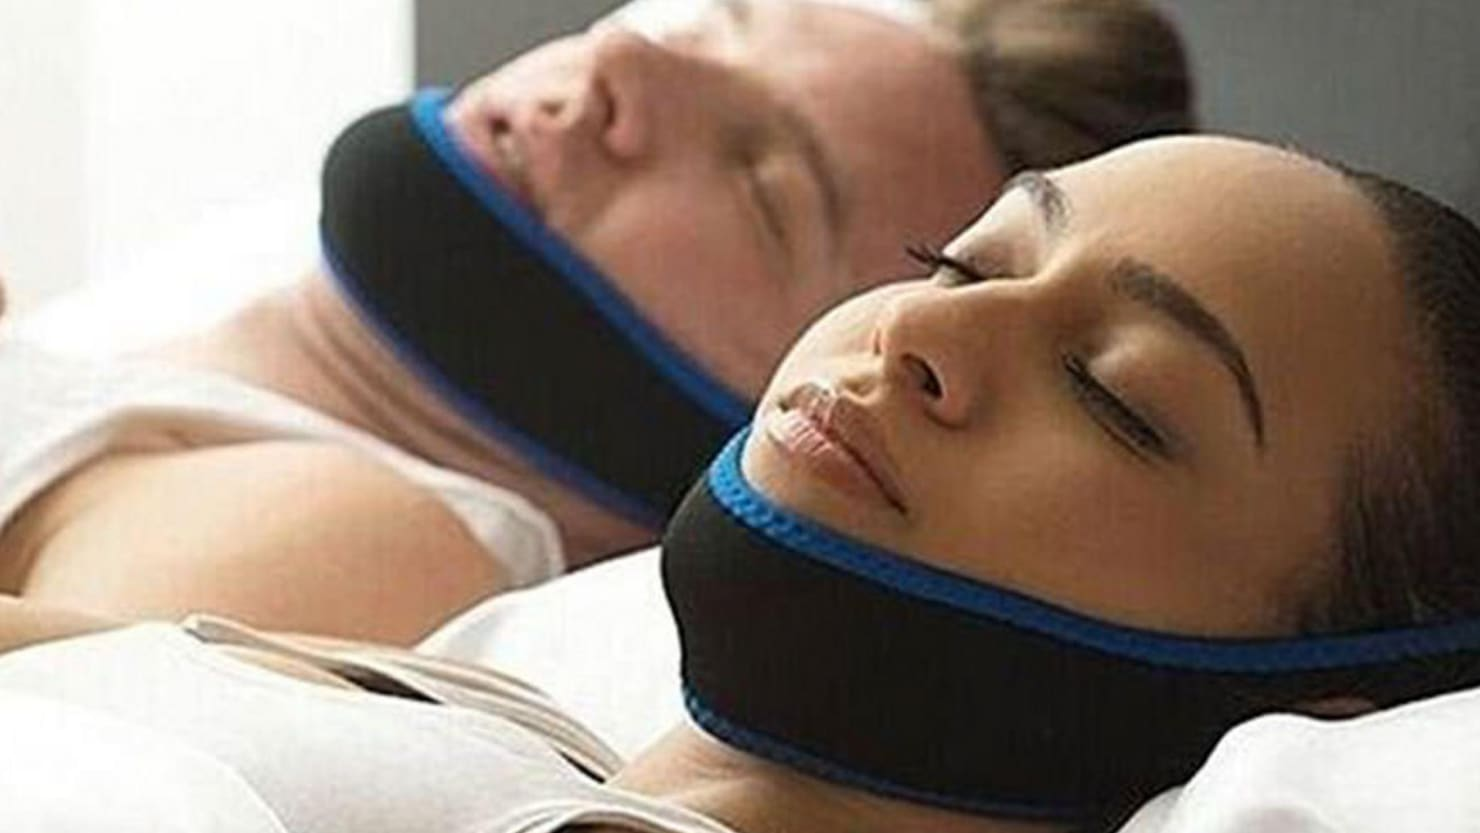 Improve Your Sleep With This Device That Prevents Snoring, Sleep Apnea, And More